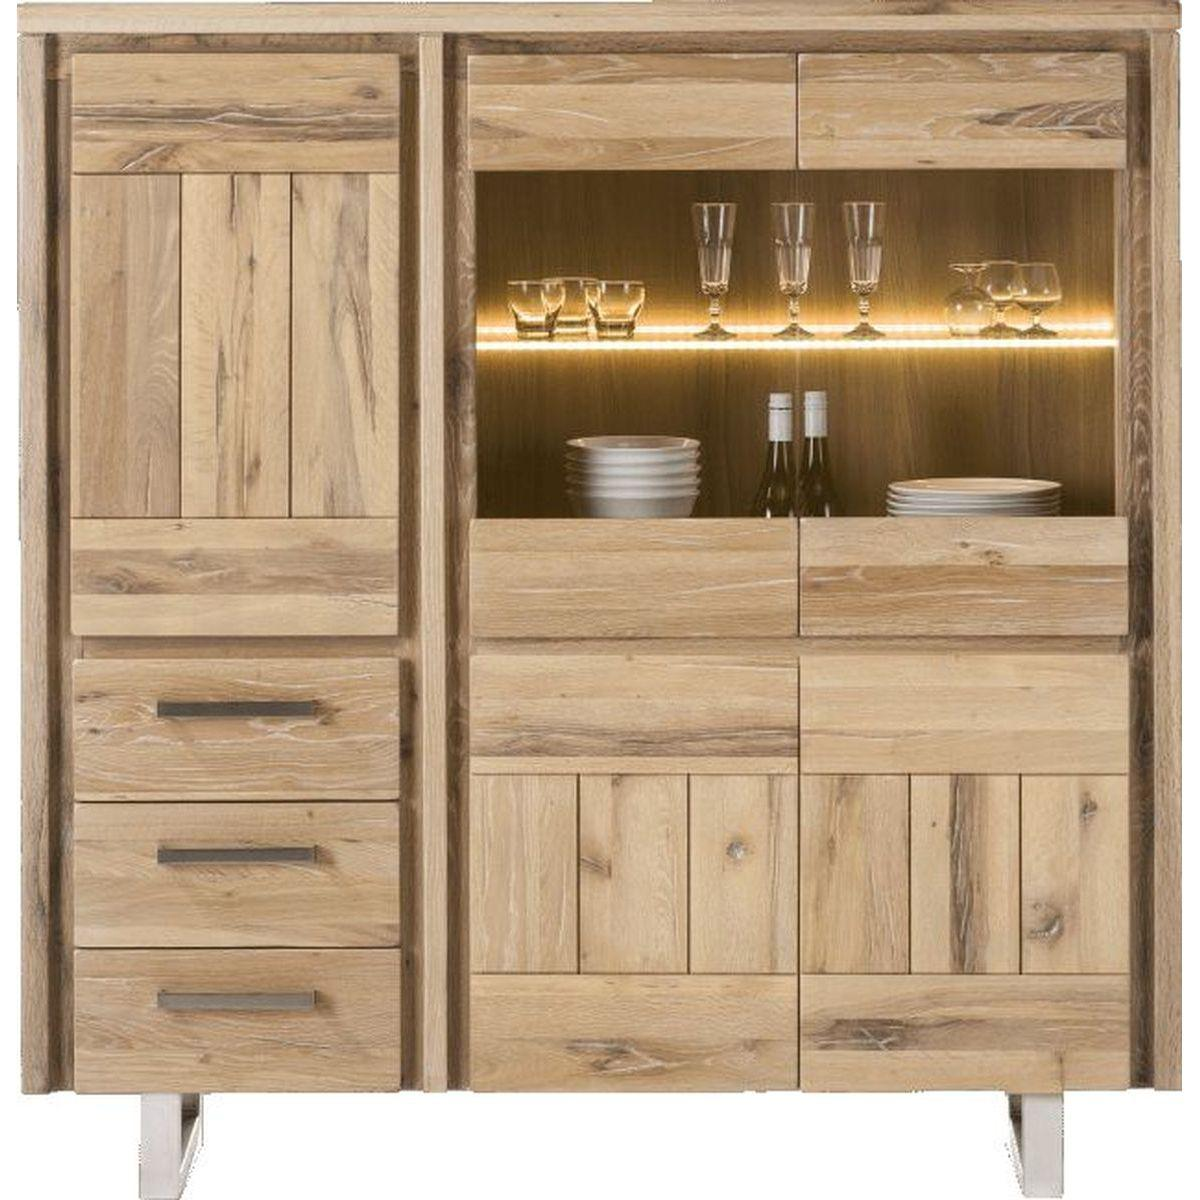 MORE by H&H Highboard 150cm